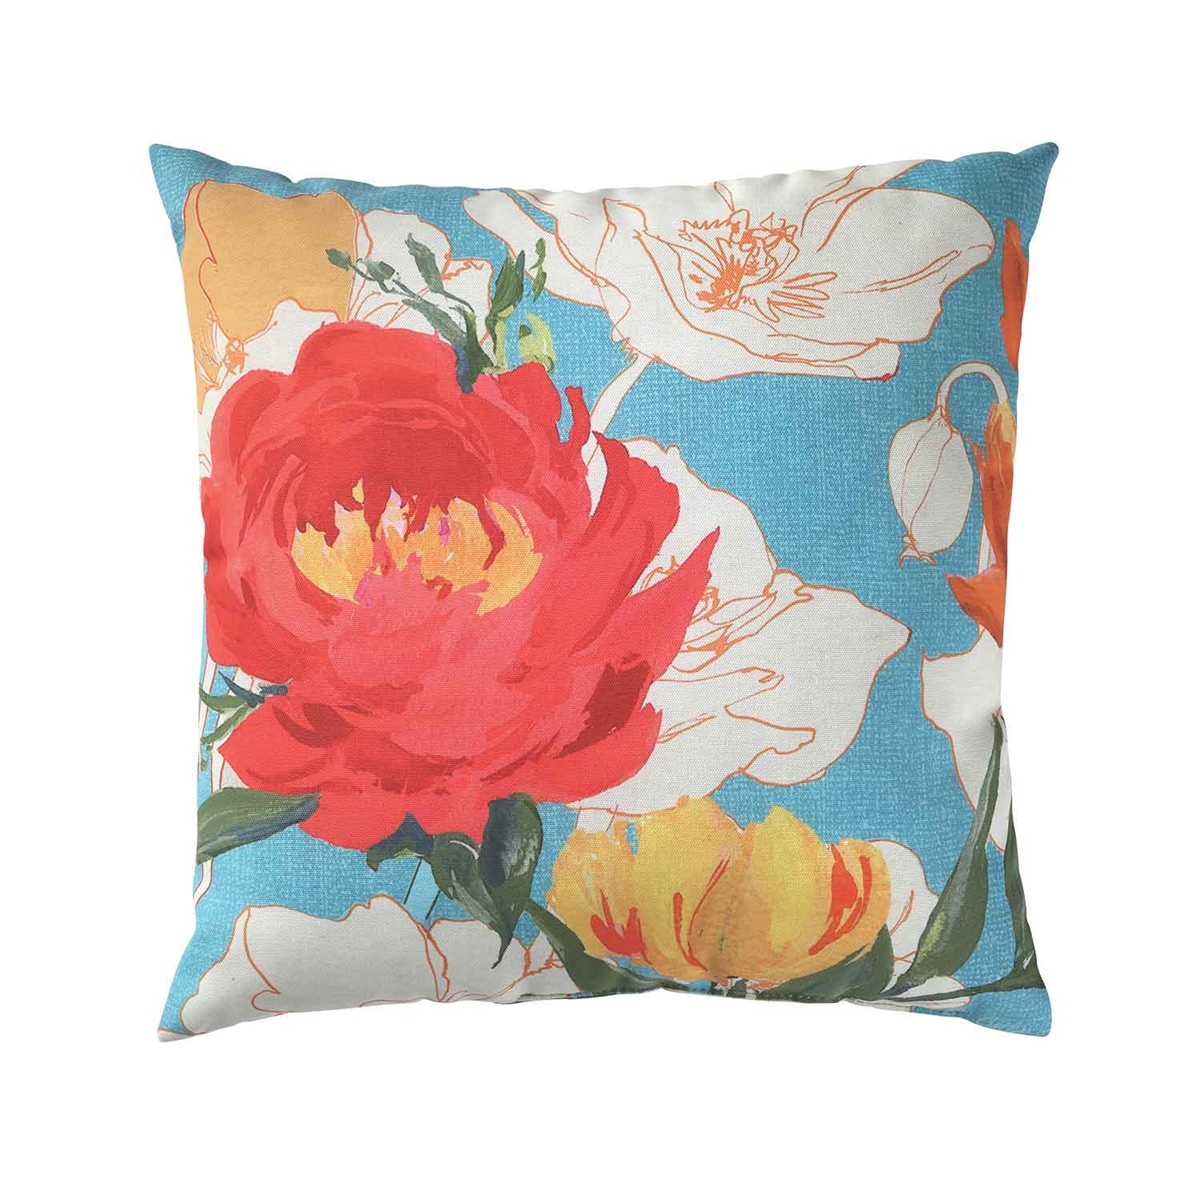 Peony and Poppies Pillow